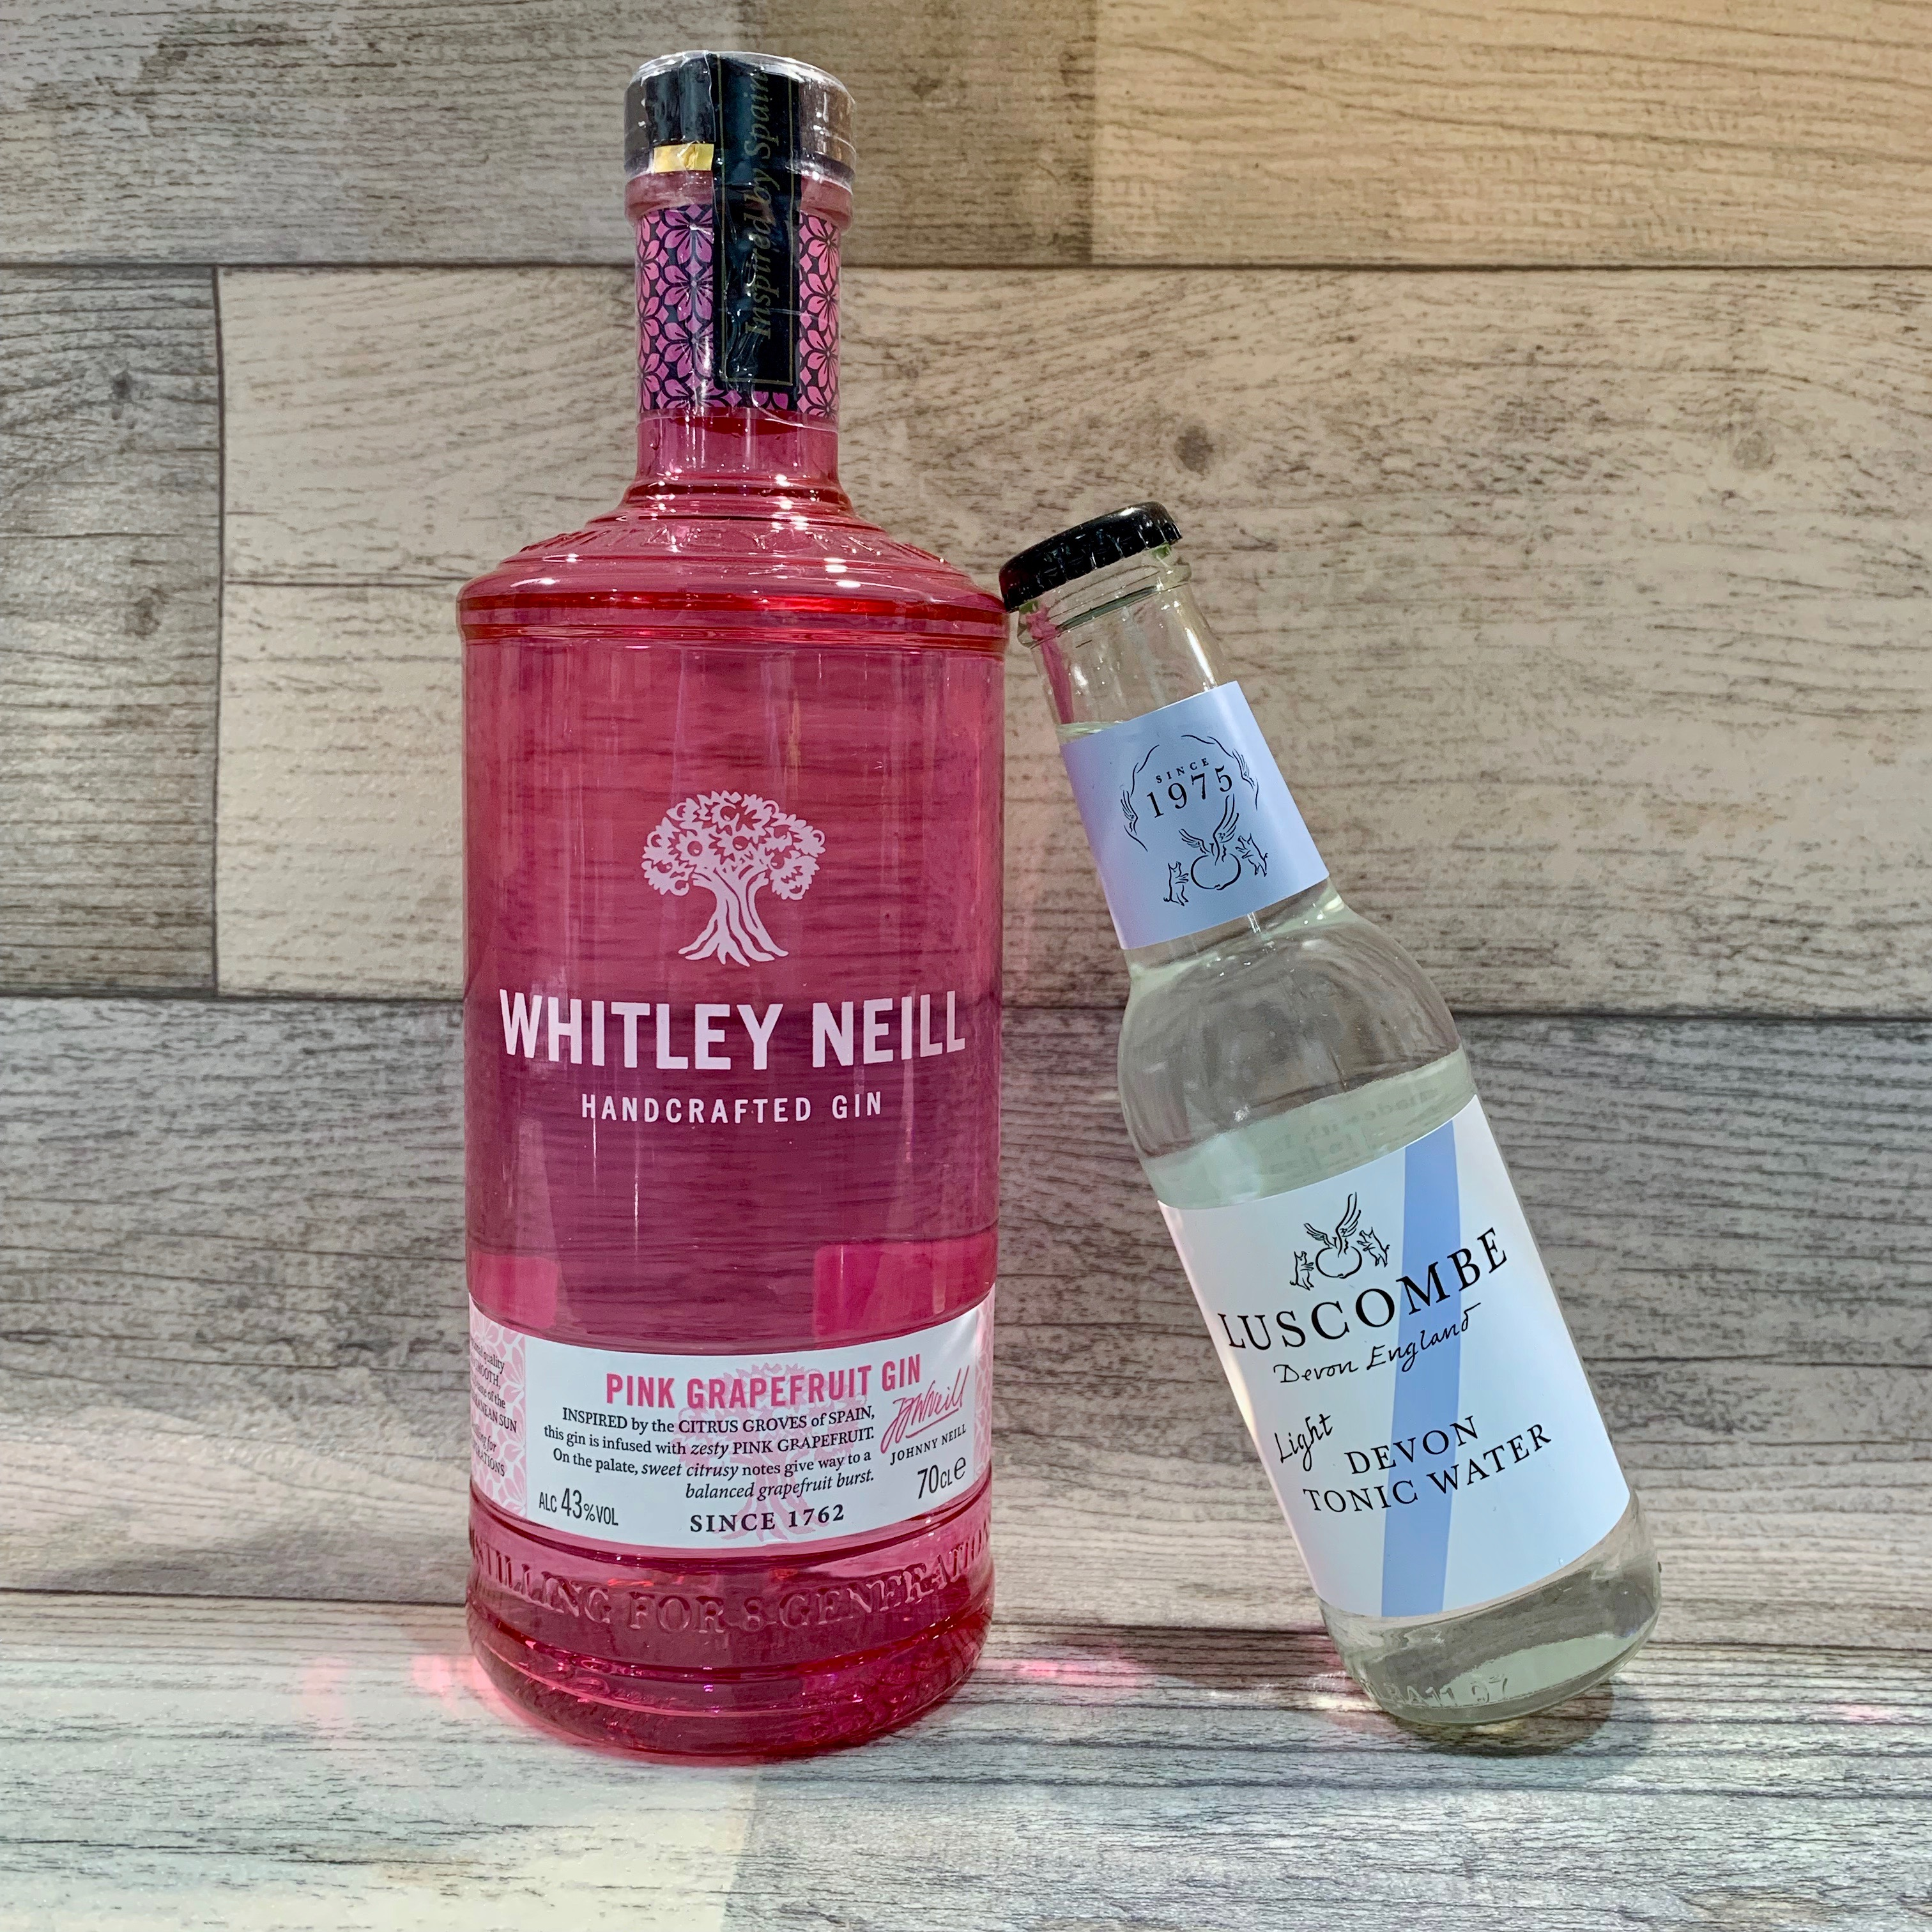 New Whitley Neill Pink Grapefruit Gin